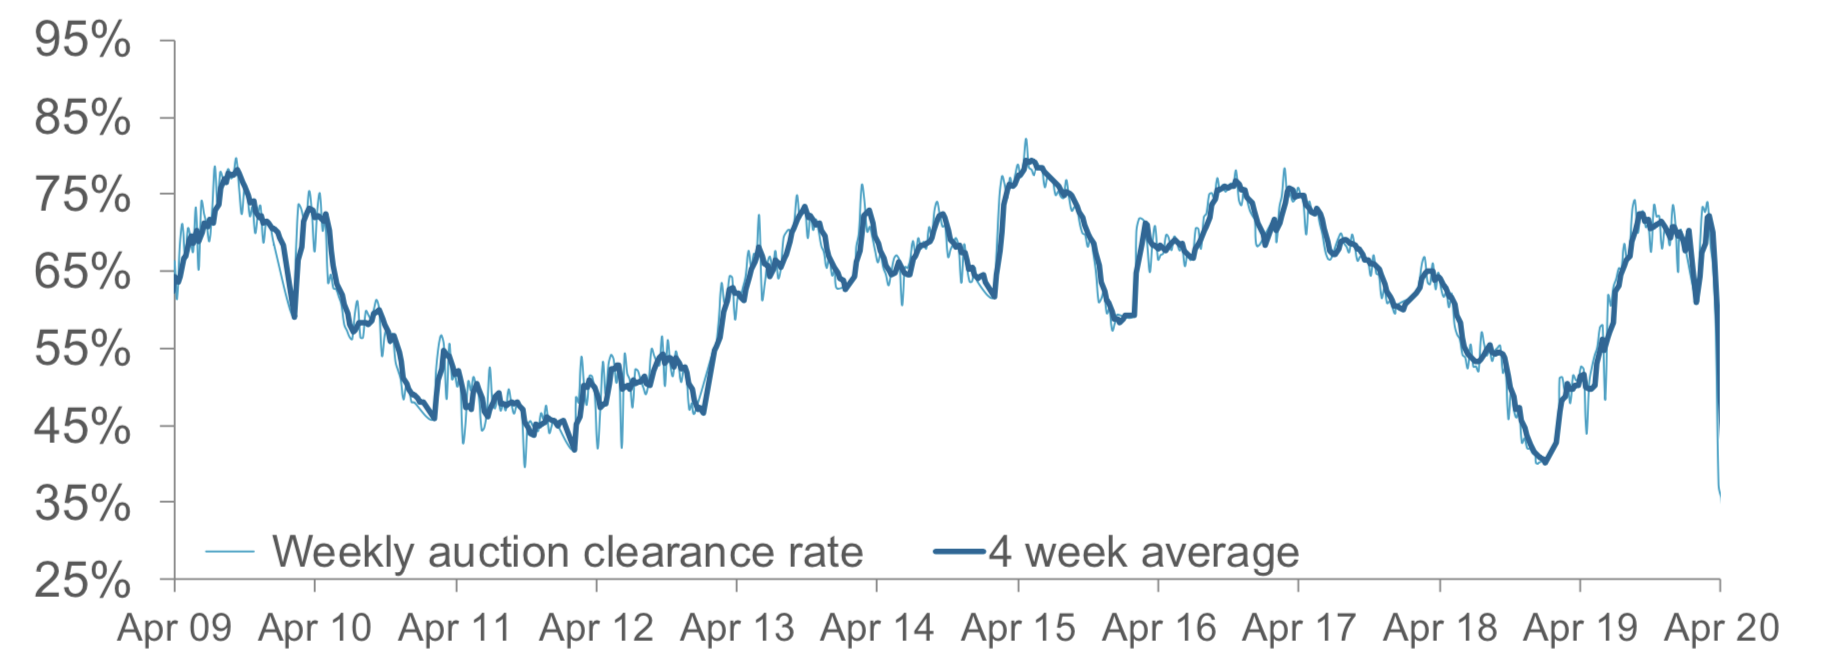 CoreLogic graph showing the plunge in combined weekly auction clearance rates for all capital cities in April 2020, with a preliminary rate of 29.3 per cent amid the challenges presented by Covid-19.